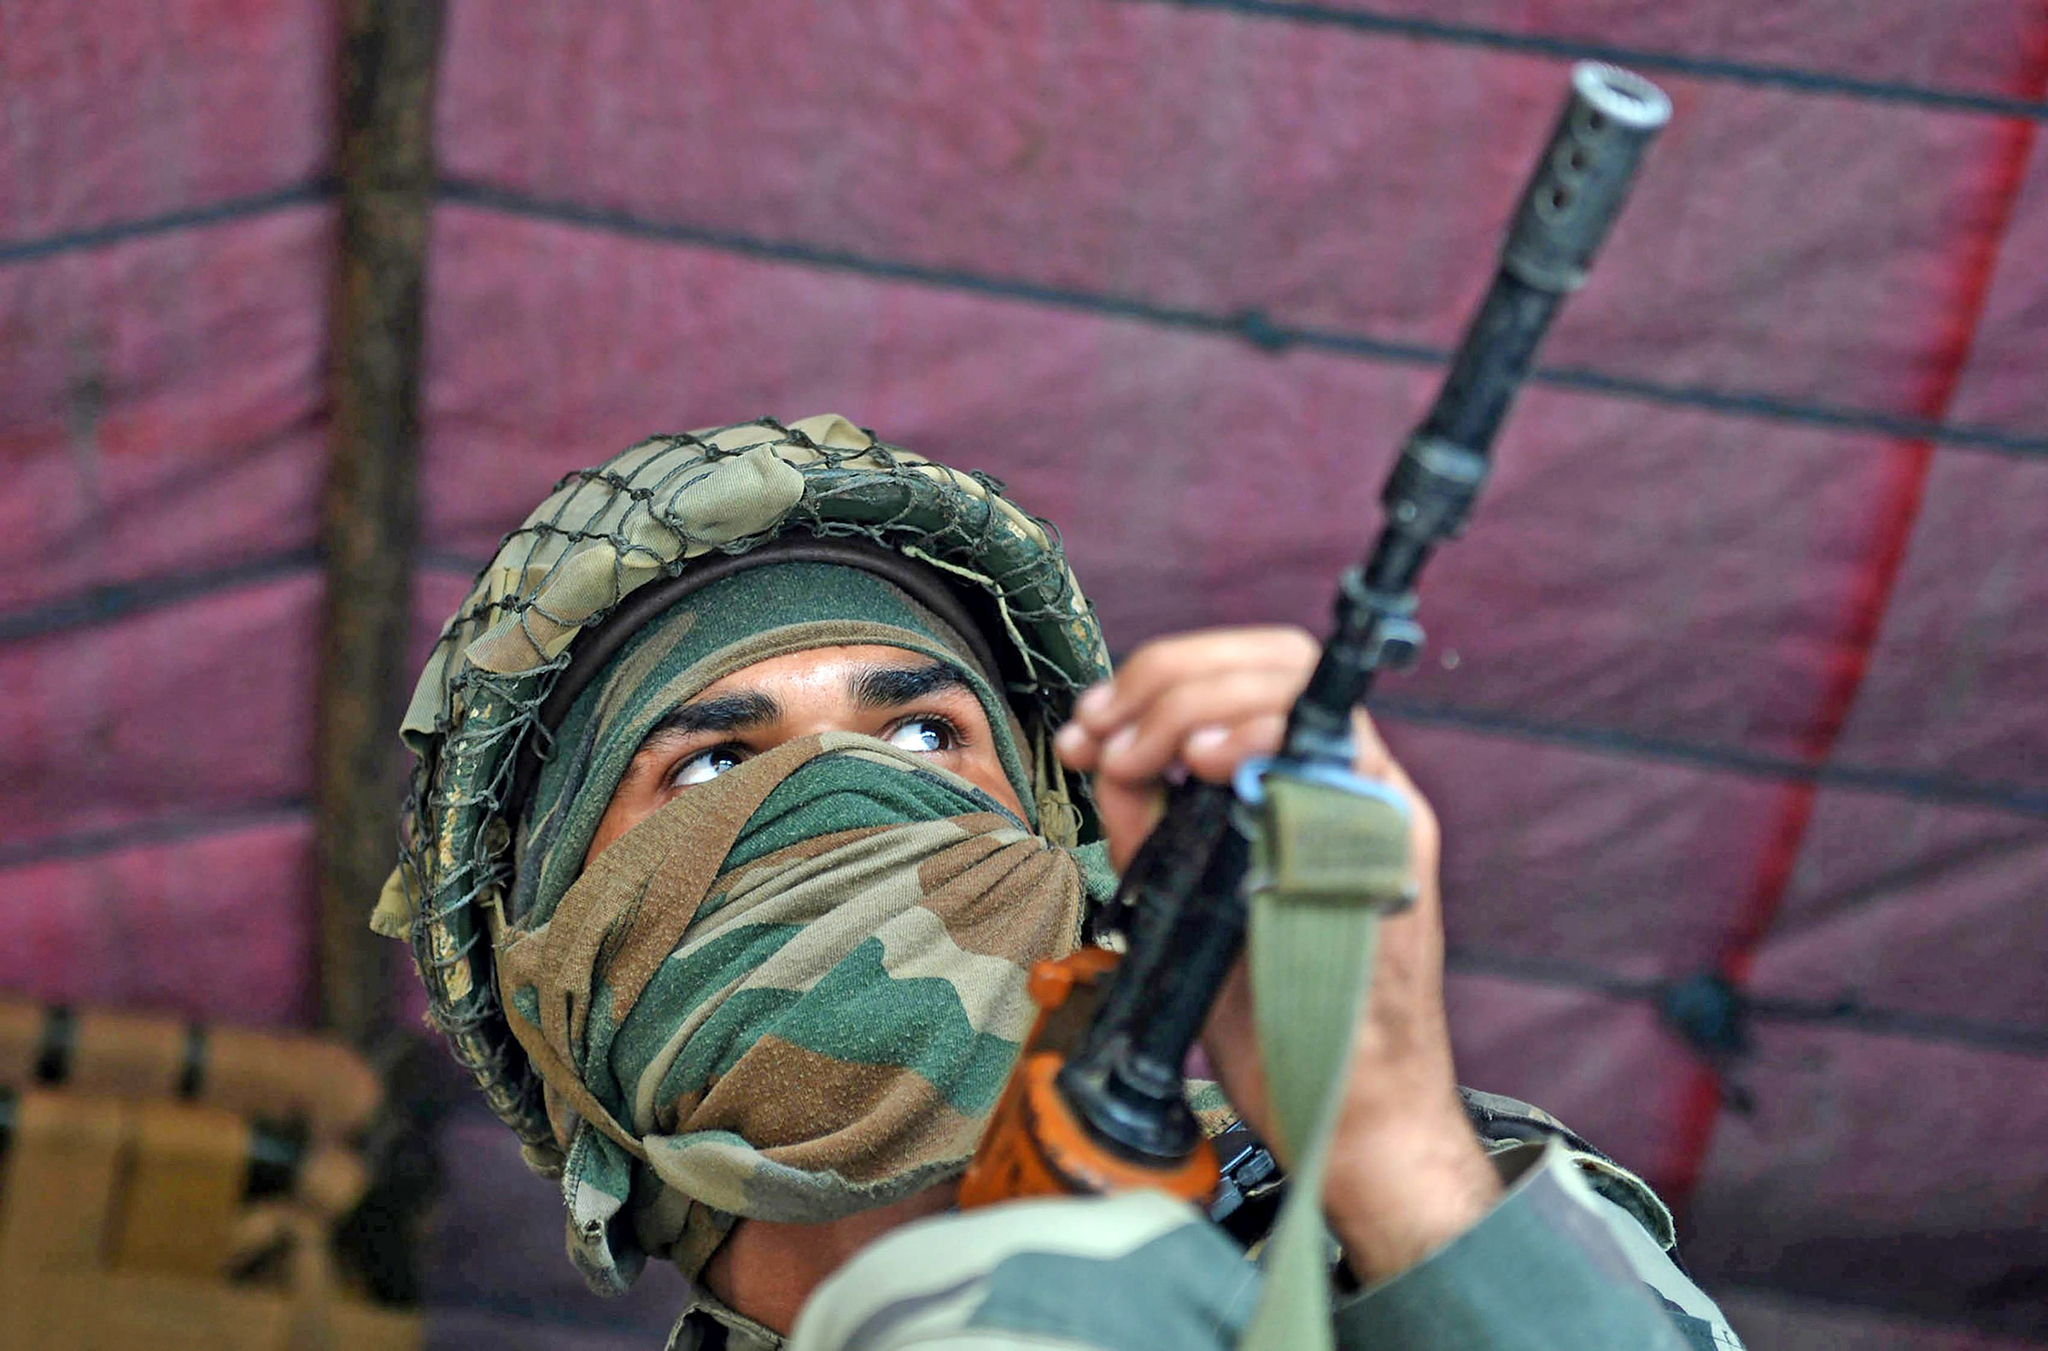 An Indian Border Security Force (BSF) soldier sits inside a truck upon arrival with others in Srinagar on August 23, 2016, to join thousands of federal forces and local policemen already deployed in the Kashmiri capital to contain a 46-day-old unrest.  Official sources said that some 2,600 additional paramilitary troopers are being flown into Srinagar from Gujarat, Rajasthan and West Bengal to supplement the governments effort to contain the situation in the restive state of Jammu and Kashmir.